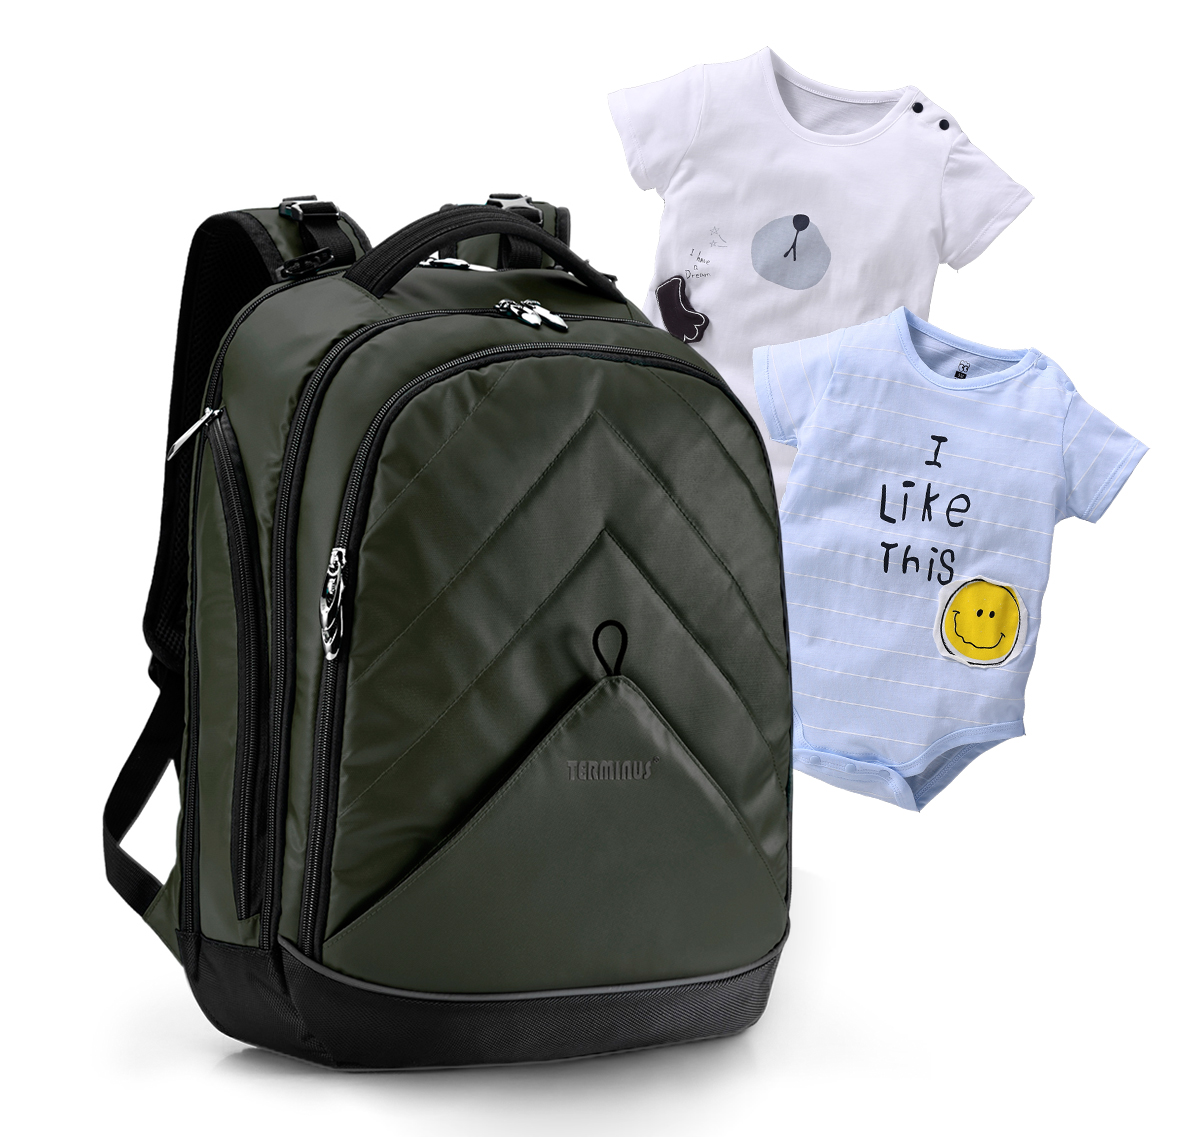 terminus multi function baby diaper backpack free 2 baby clothes malaysia best online. Black Bedroom Furniture Sets. Home Design Ideas